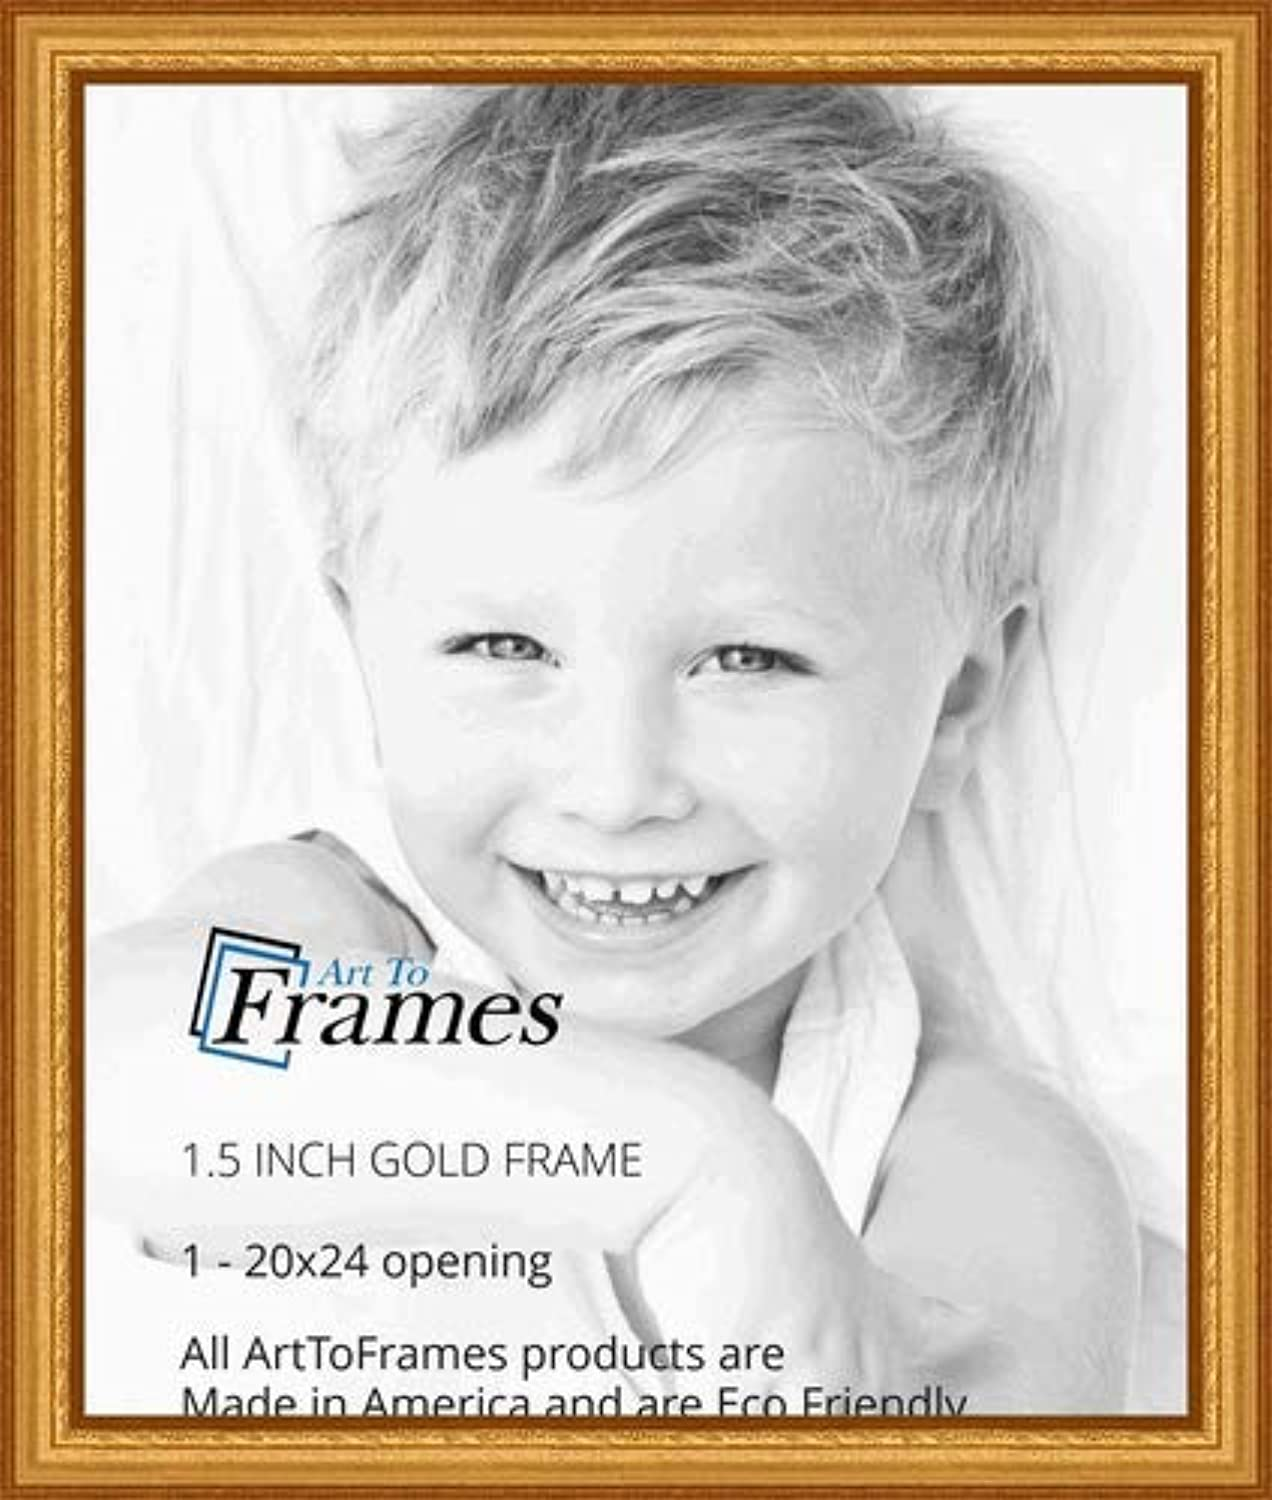 ArtToFrames 20x24 inch gold Speckeled Wood Picture Frame, WOMTI-795-20x24